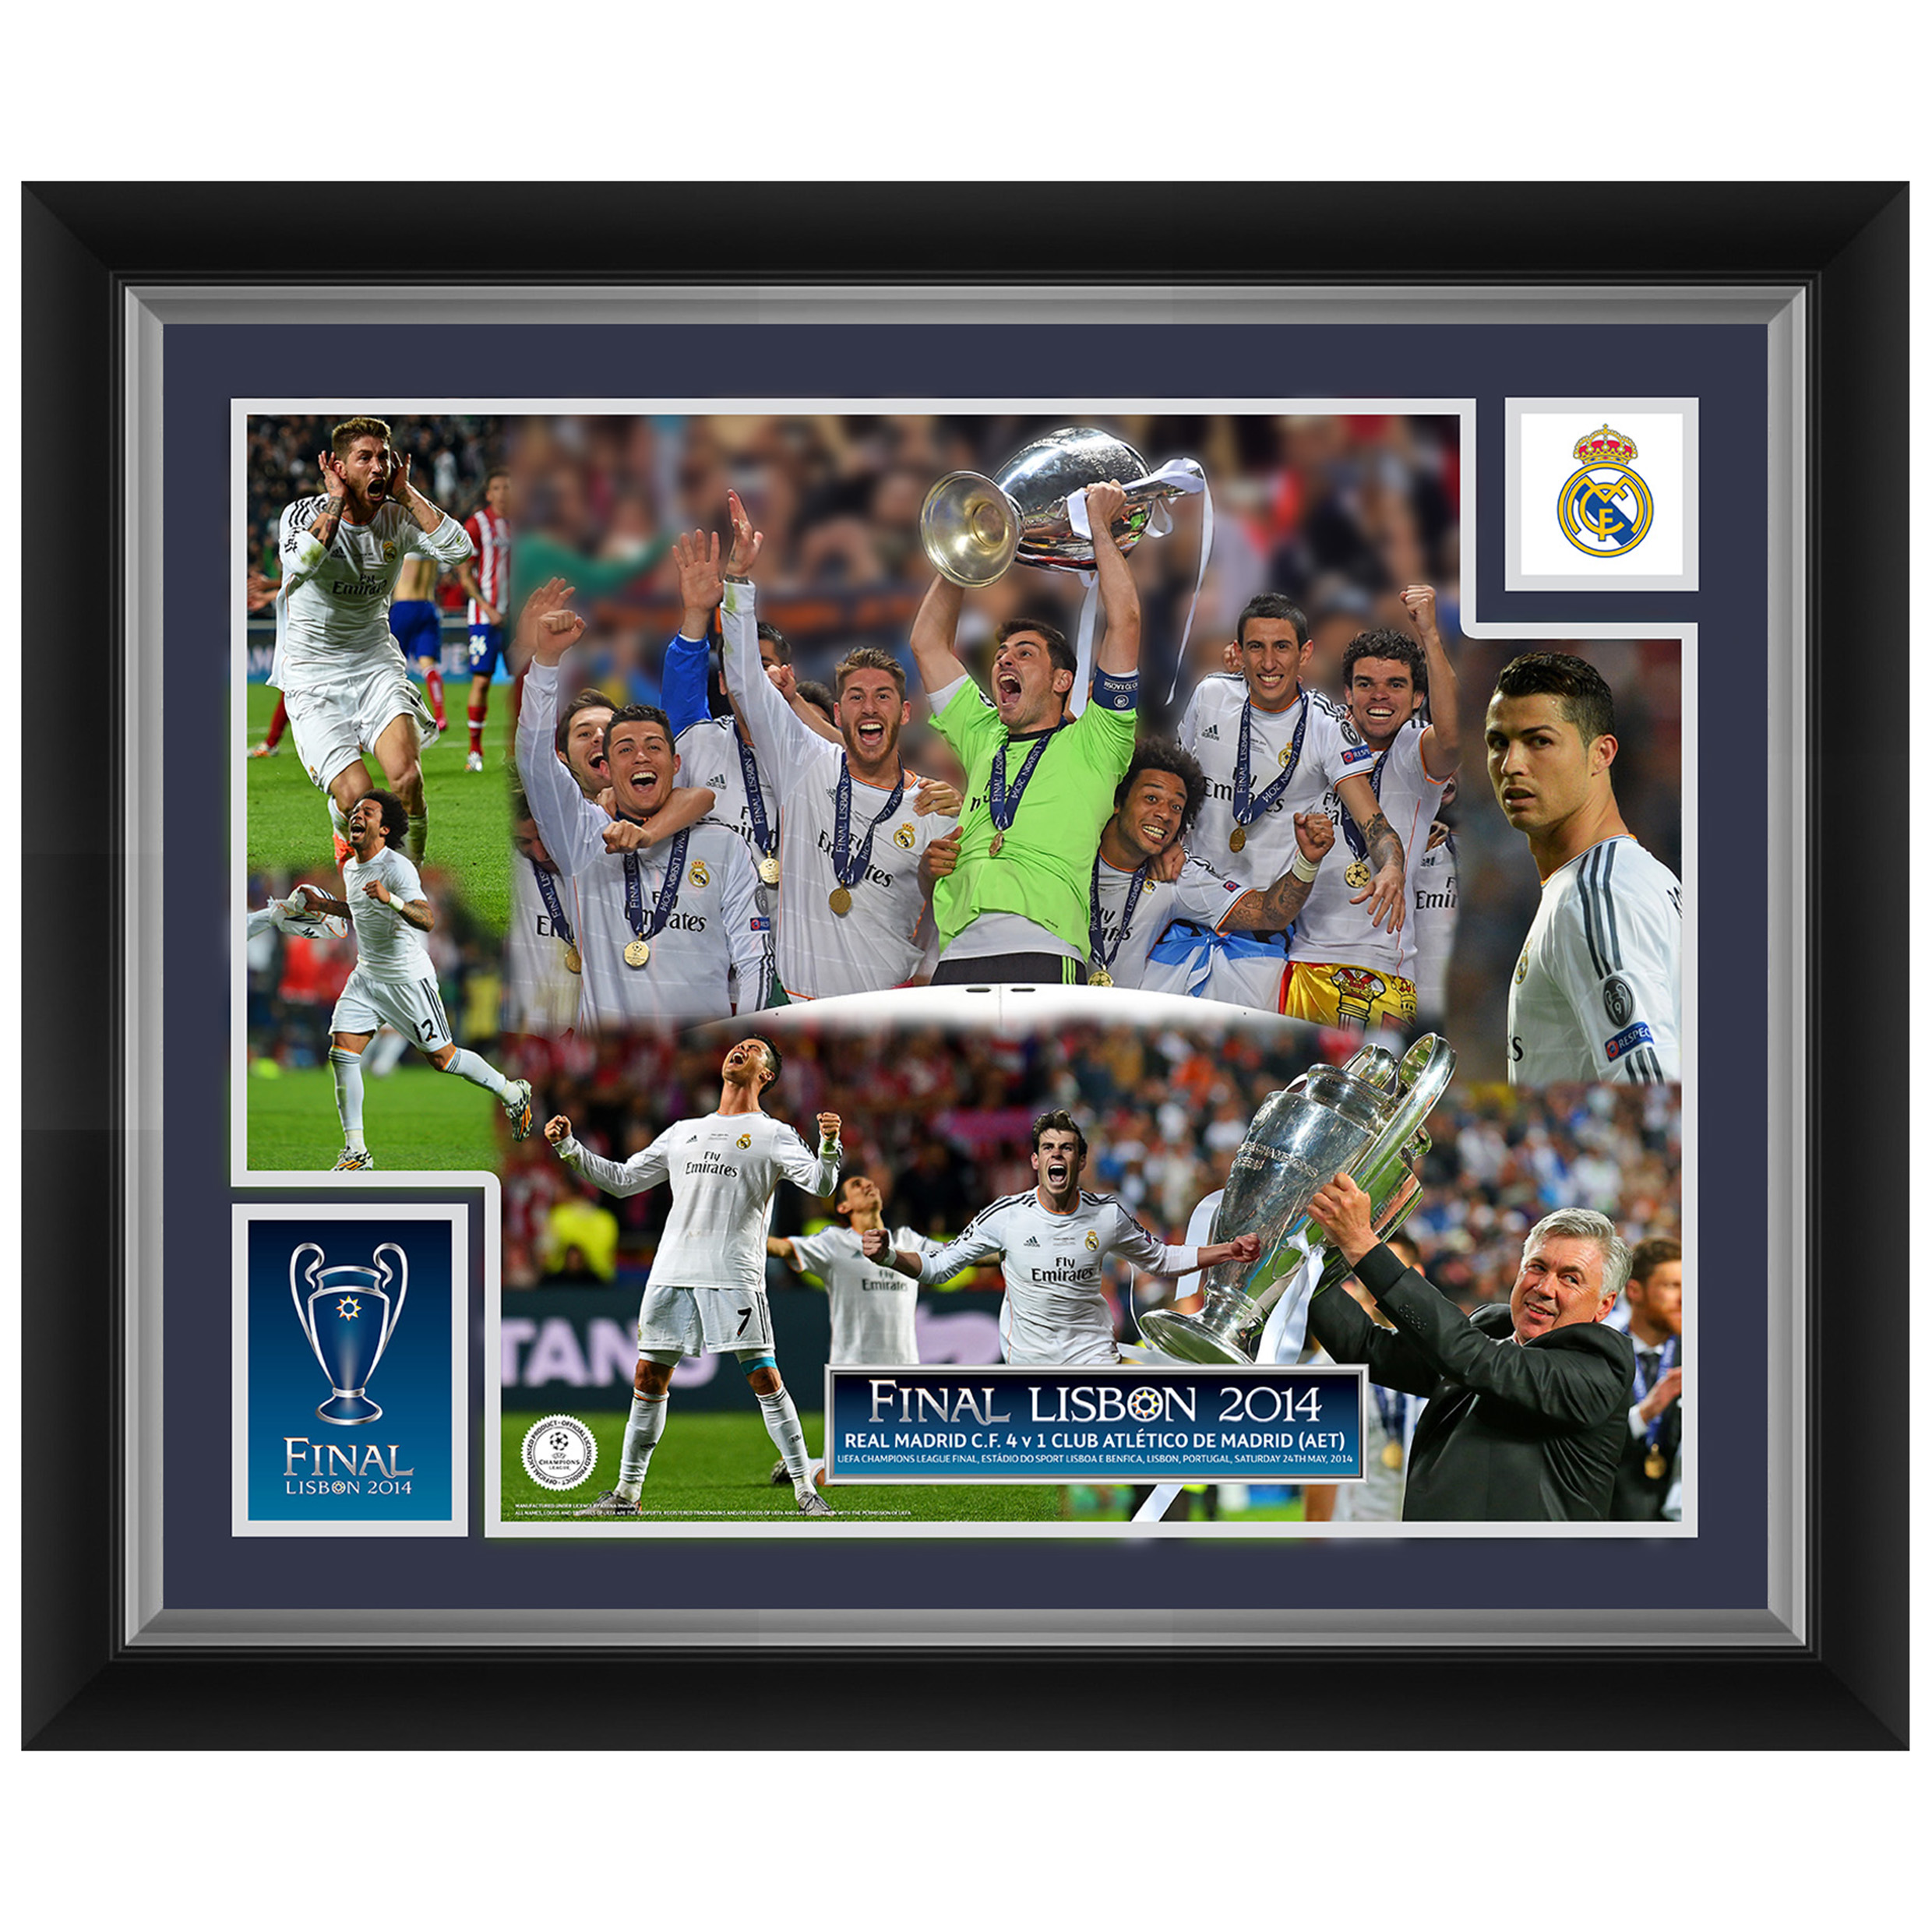 Real Madrid Champions League Final 2014 Celebration Montage Print - 20 x 16 inch